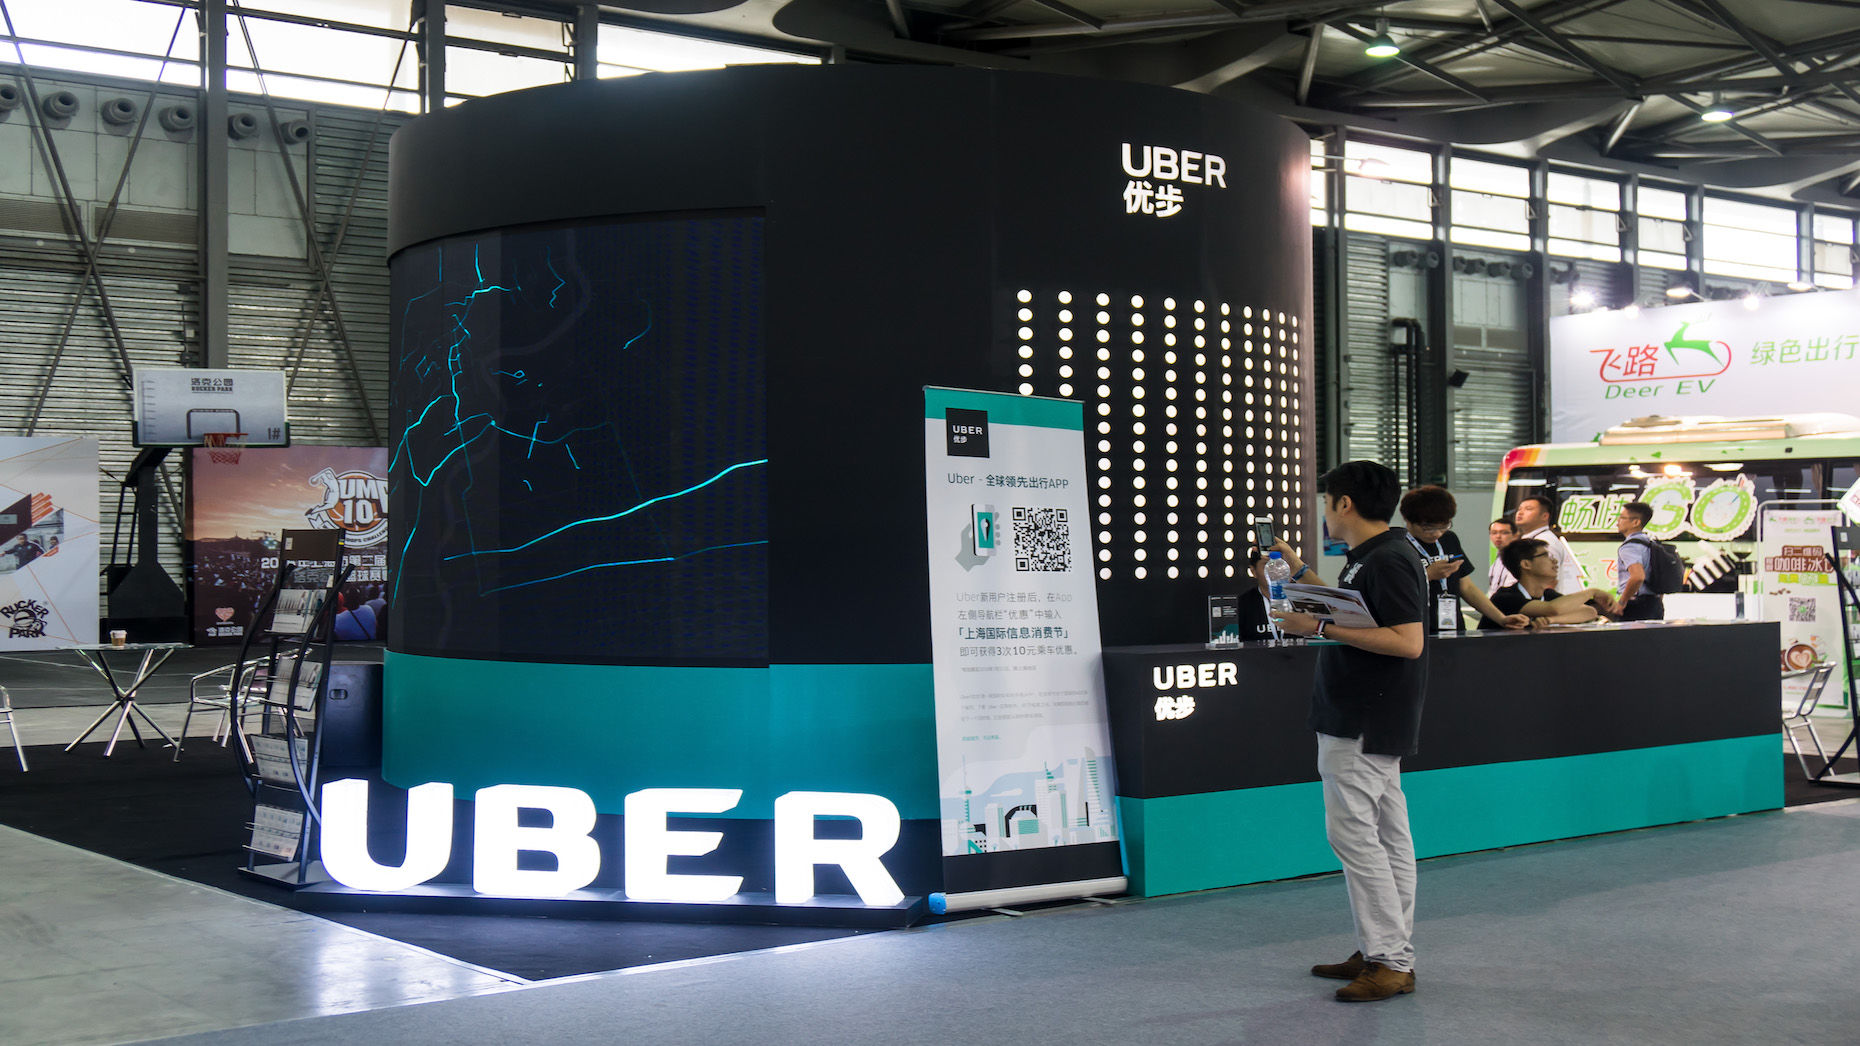 A visitor in front of the Uber stand at the 2016 Mobile World Congress in Shanghai. Photo by The Associated Press.